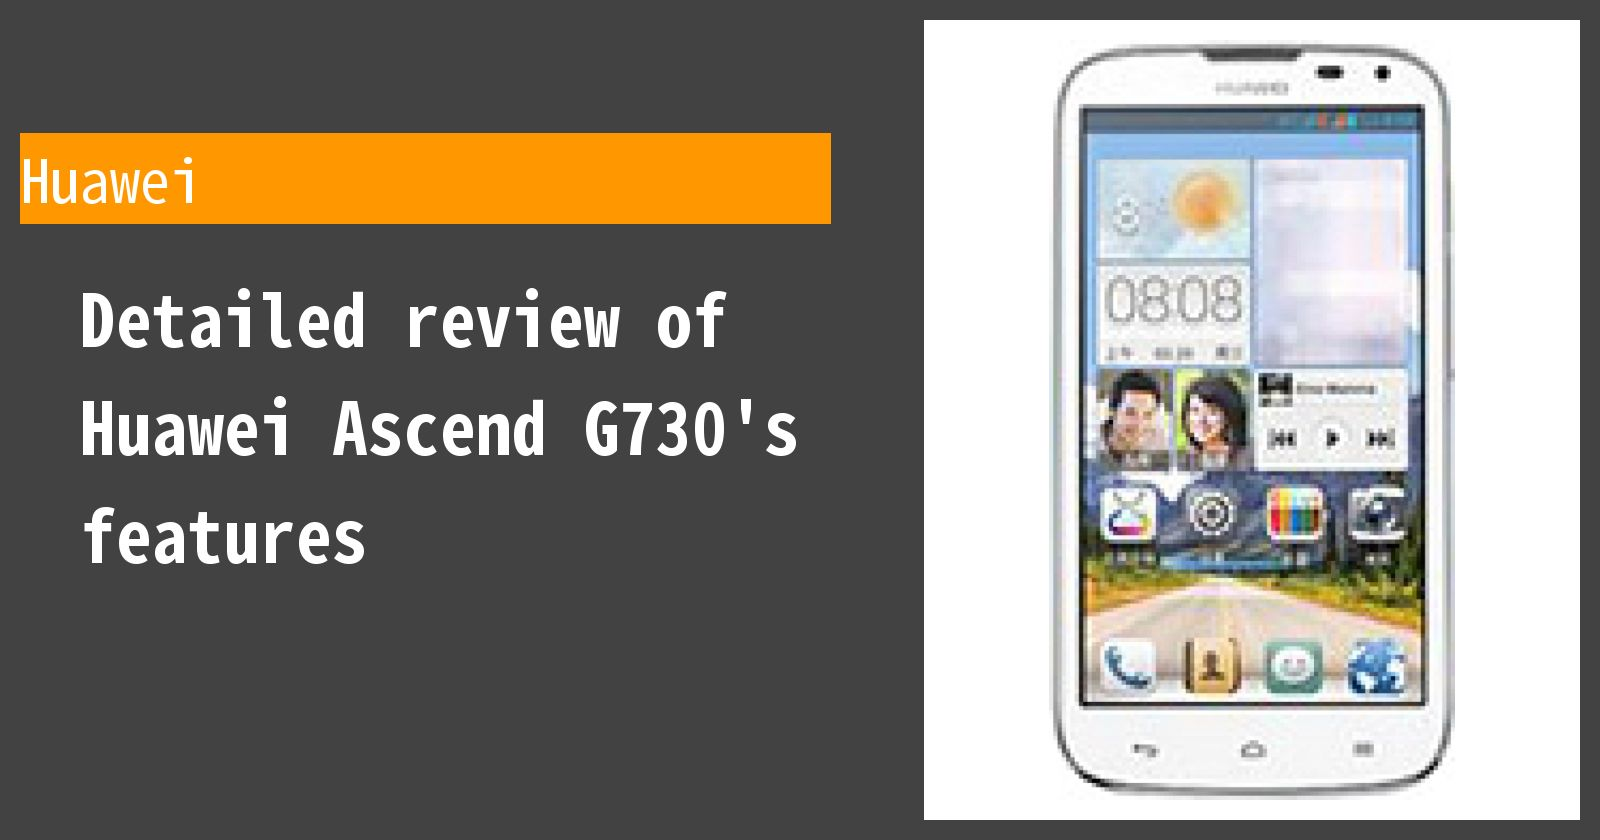 Detailed review of Huawei Ascend G730's features